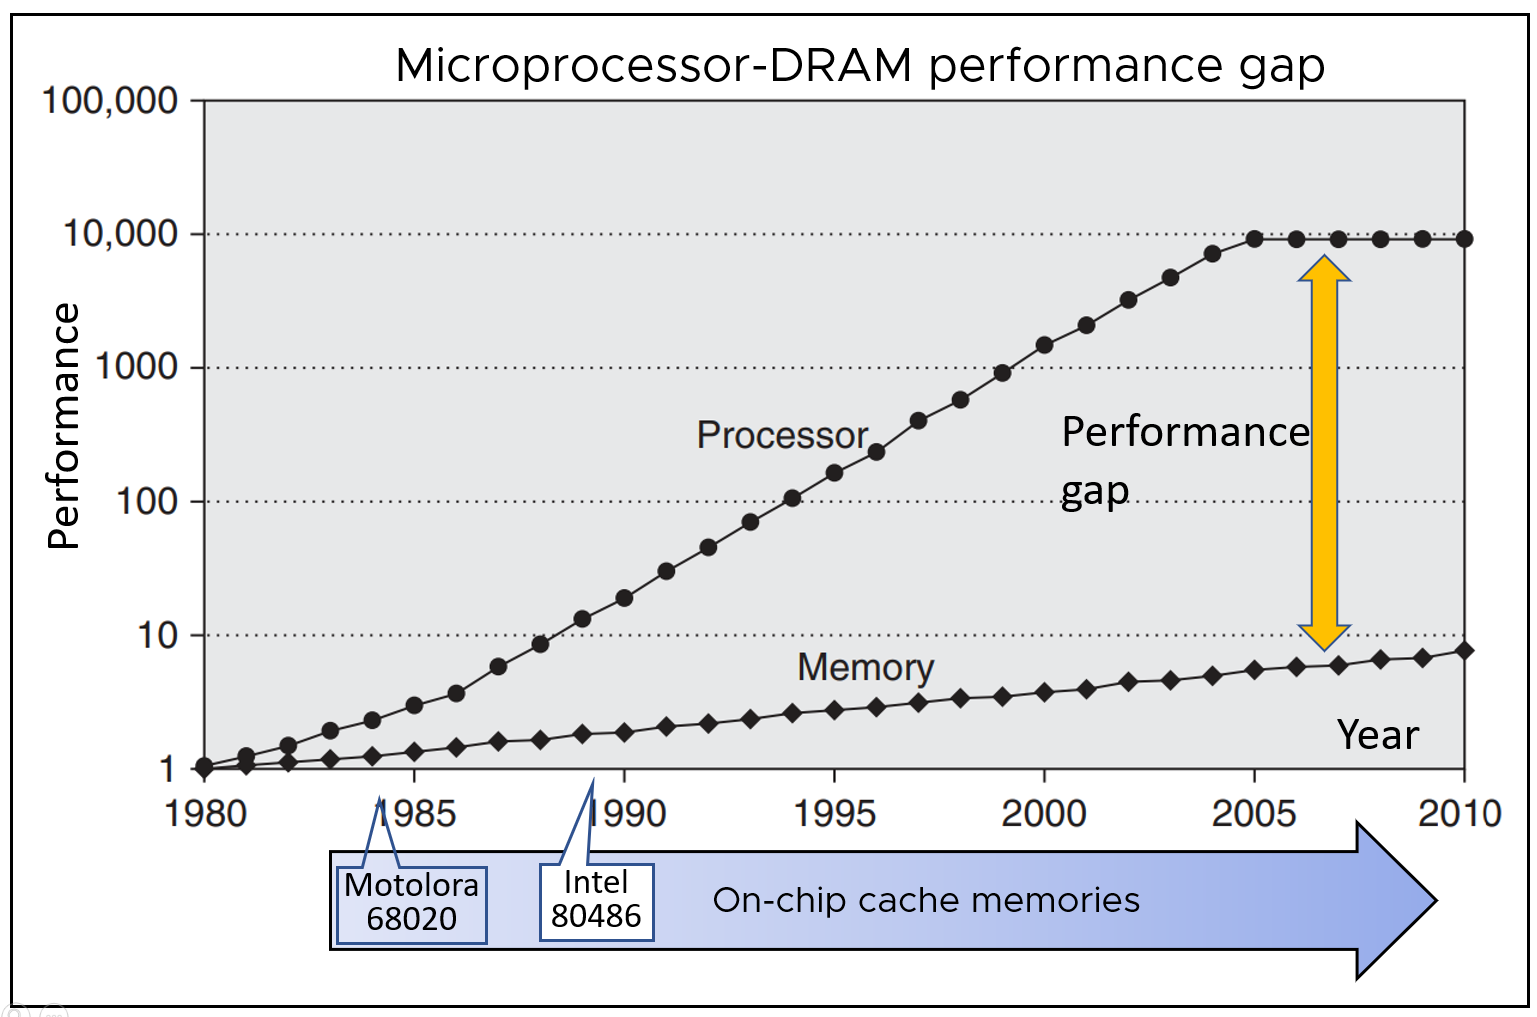 A graphical representation of the performance gap between DRAM and processors over time from 1980 until 2010.